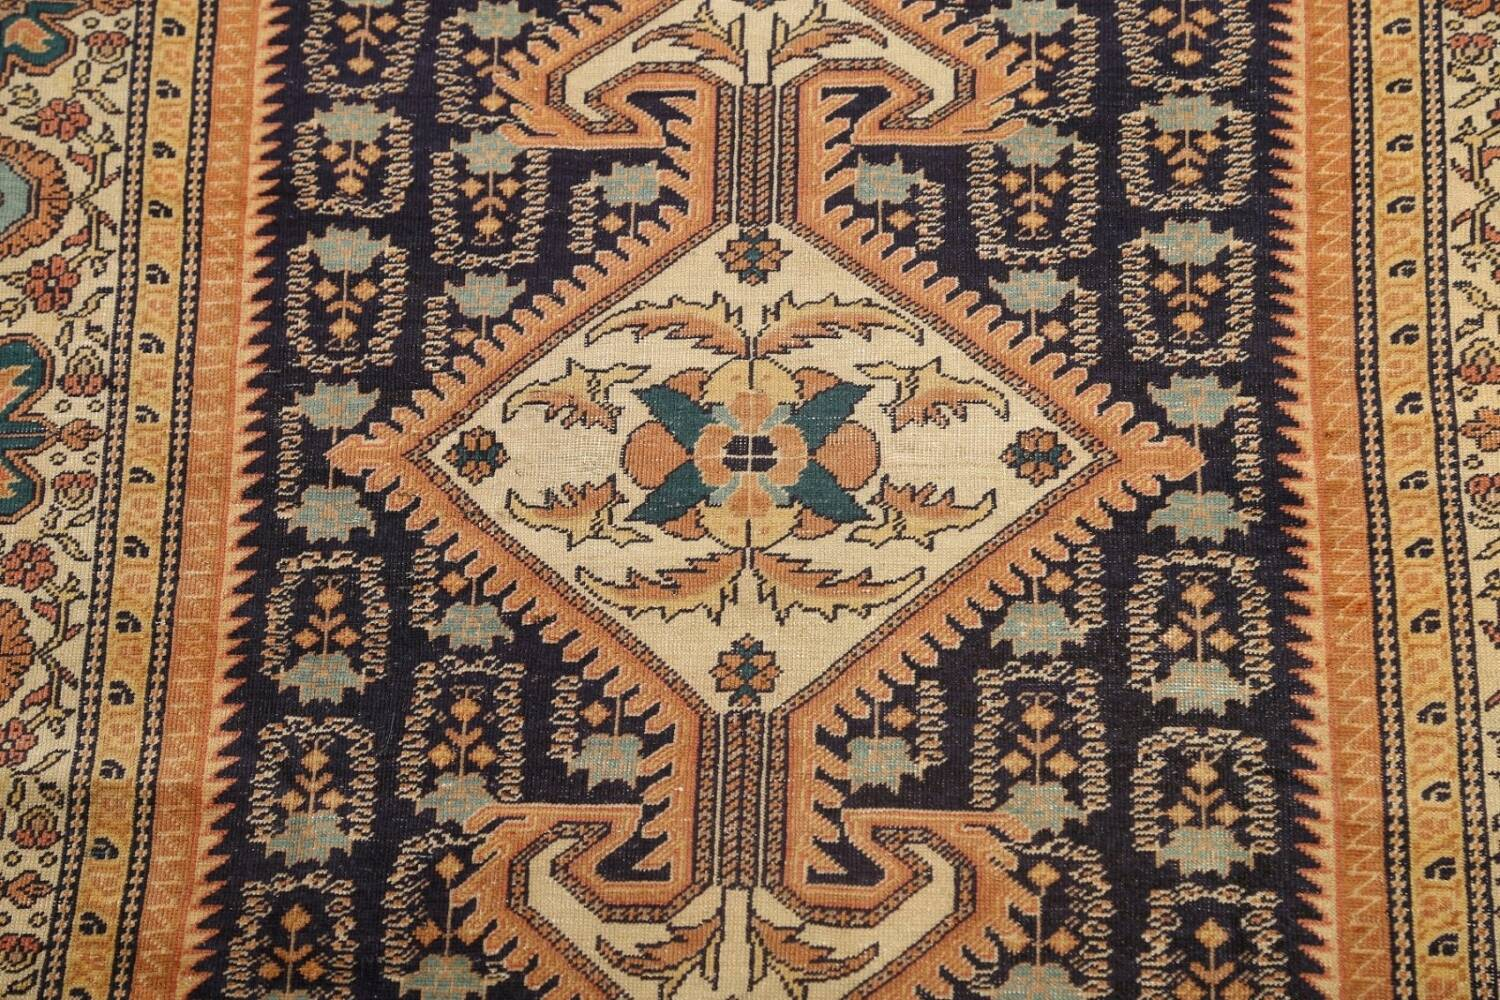 Antique 100% Vegetable Dye Sultanabad Persian Area Rug 4x5 image 4